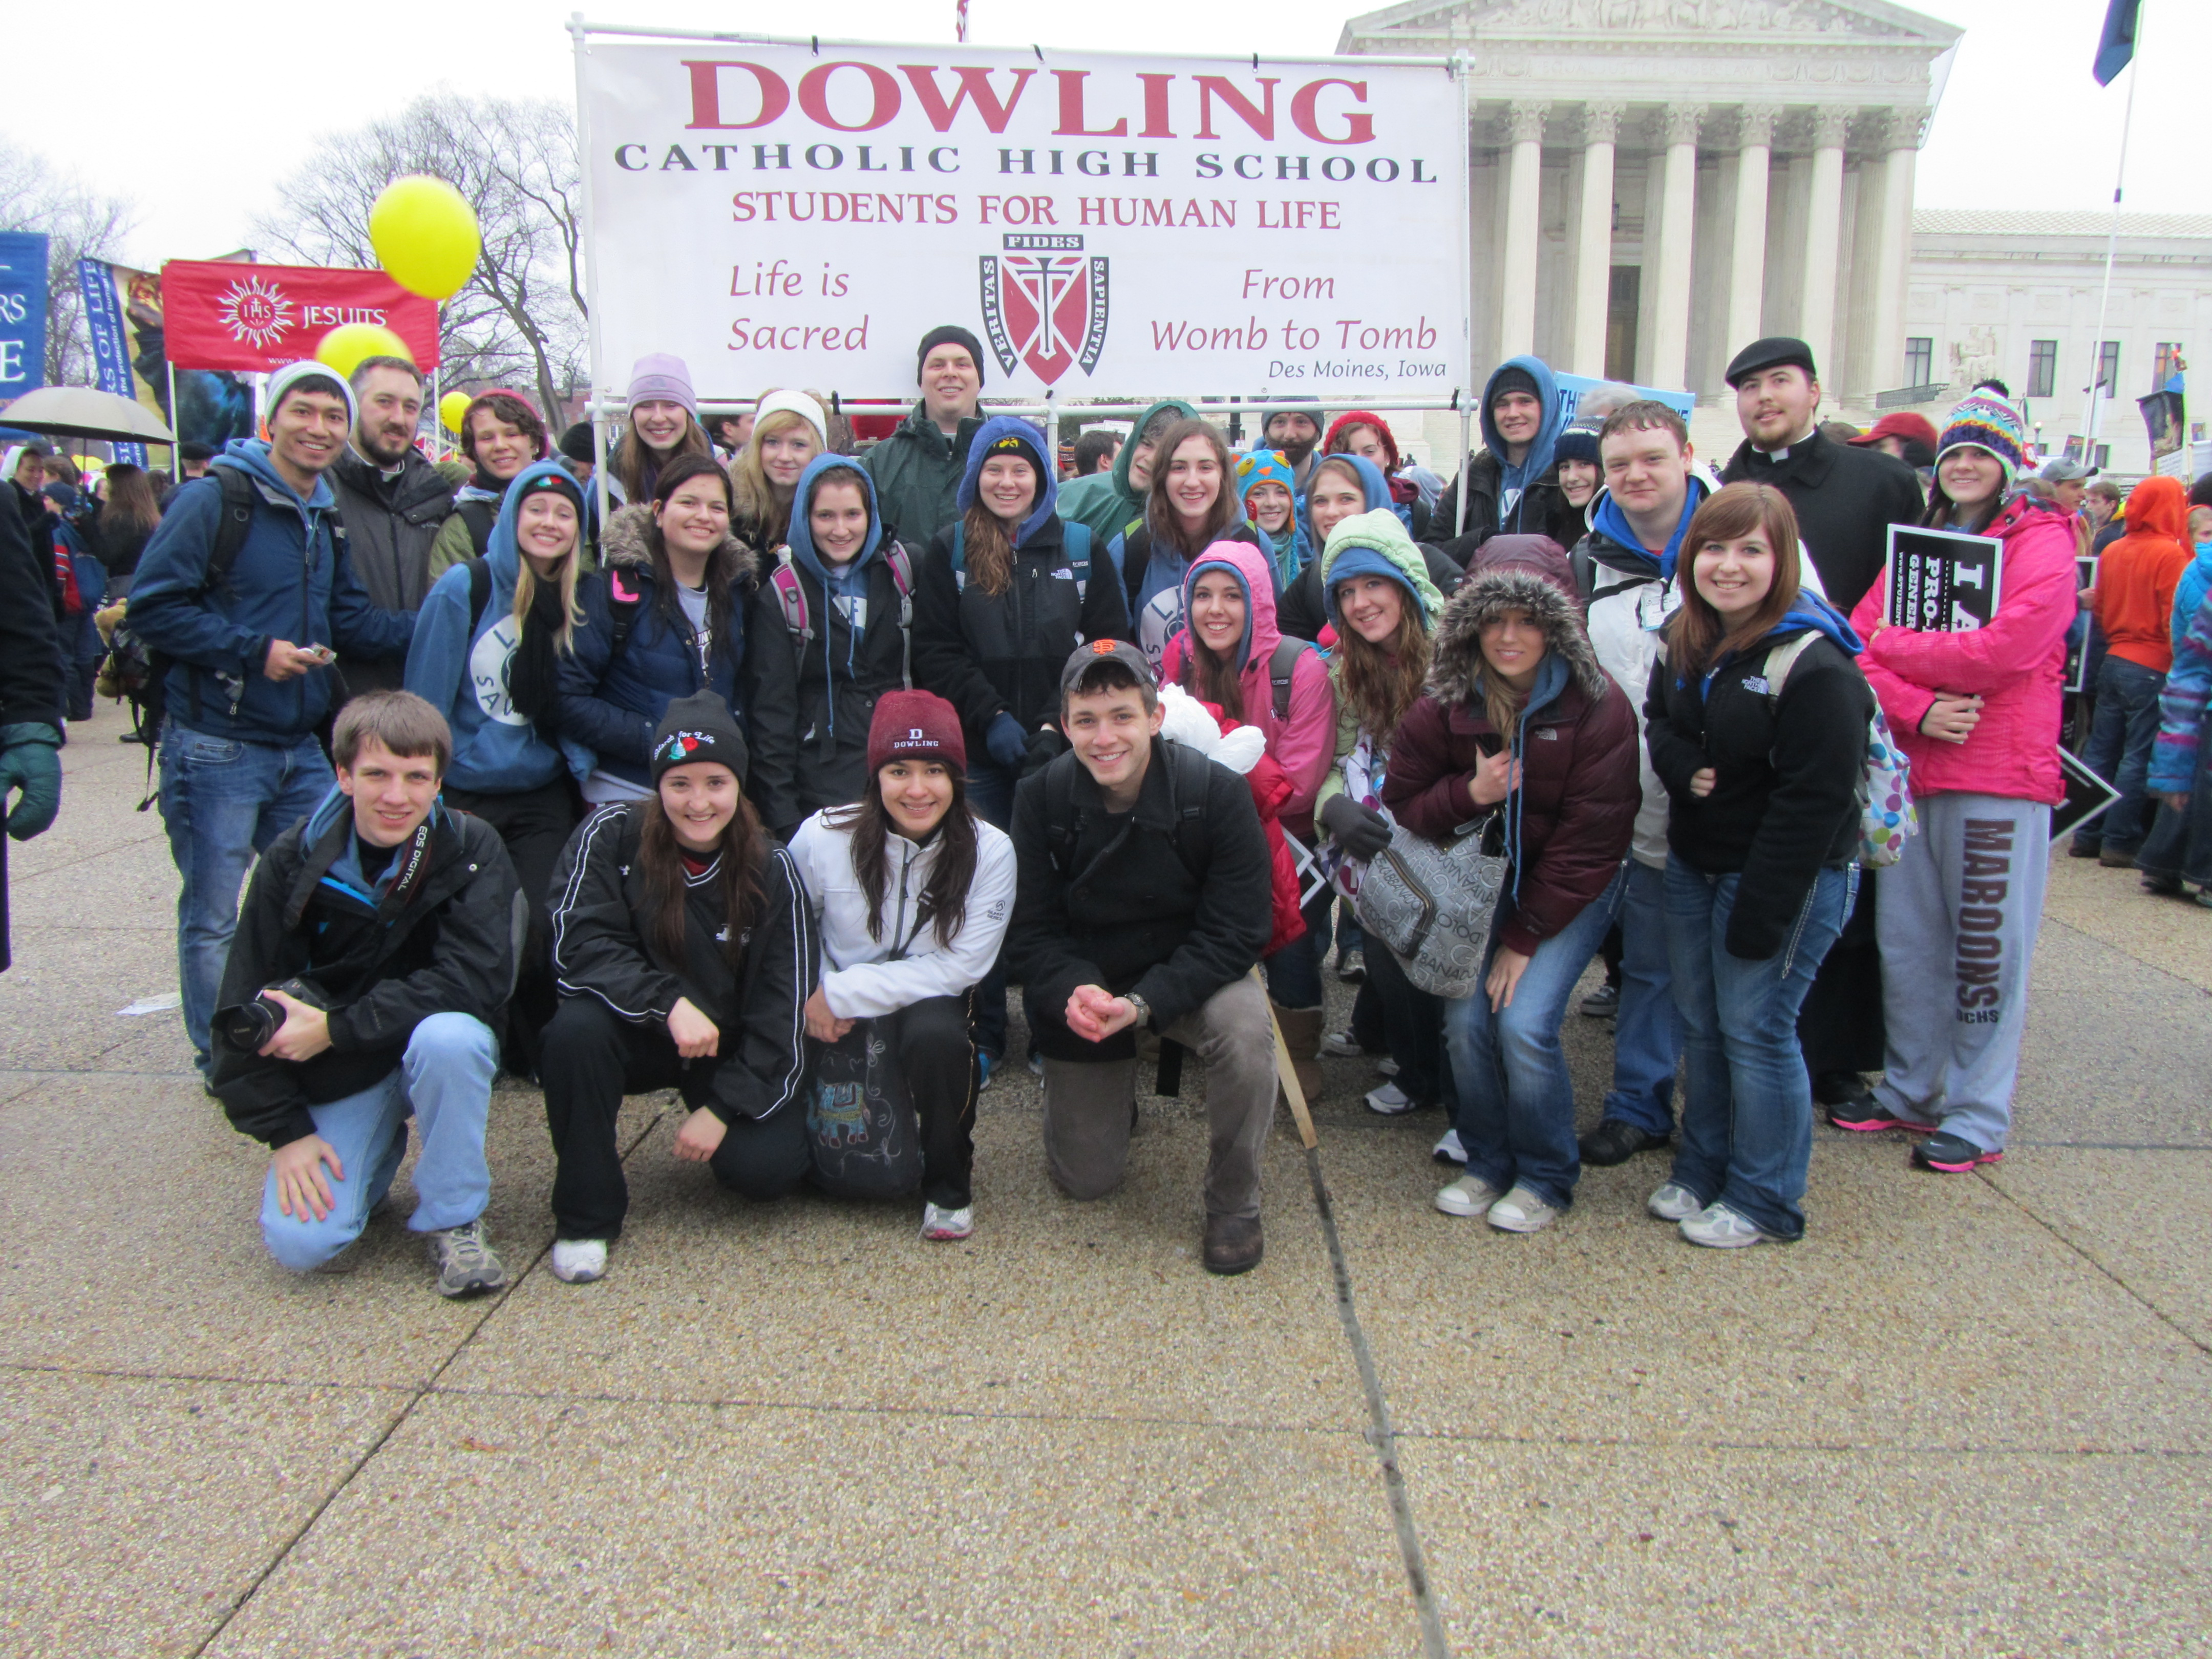 The March for Life 2012